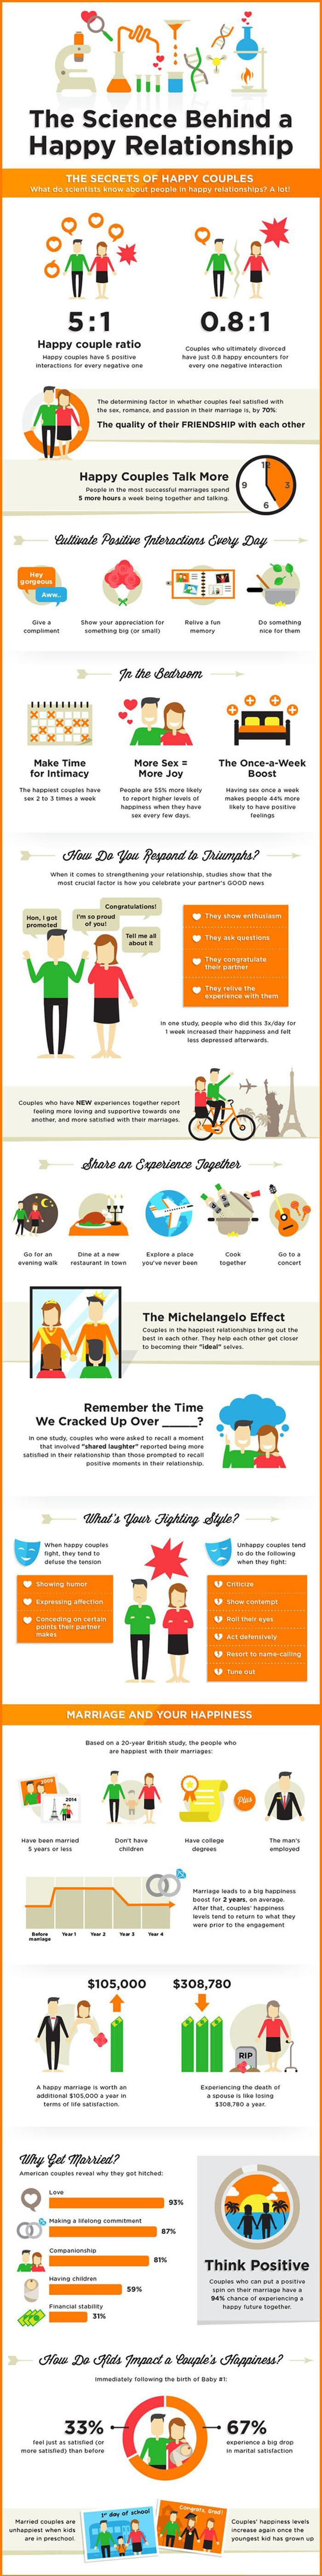 The Science Behind a Happy Relationship (infographic)